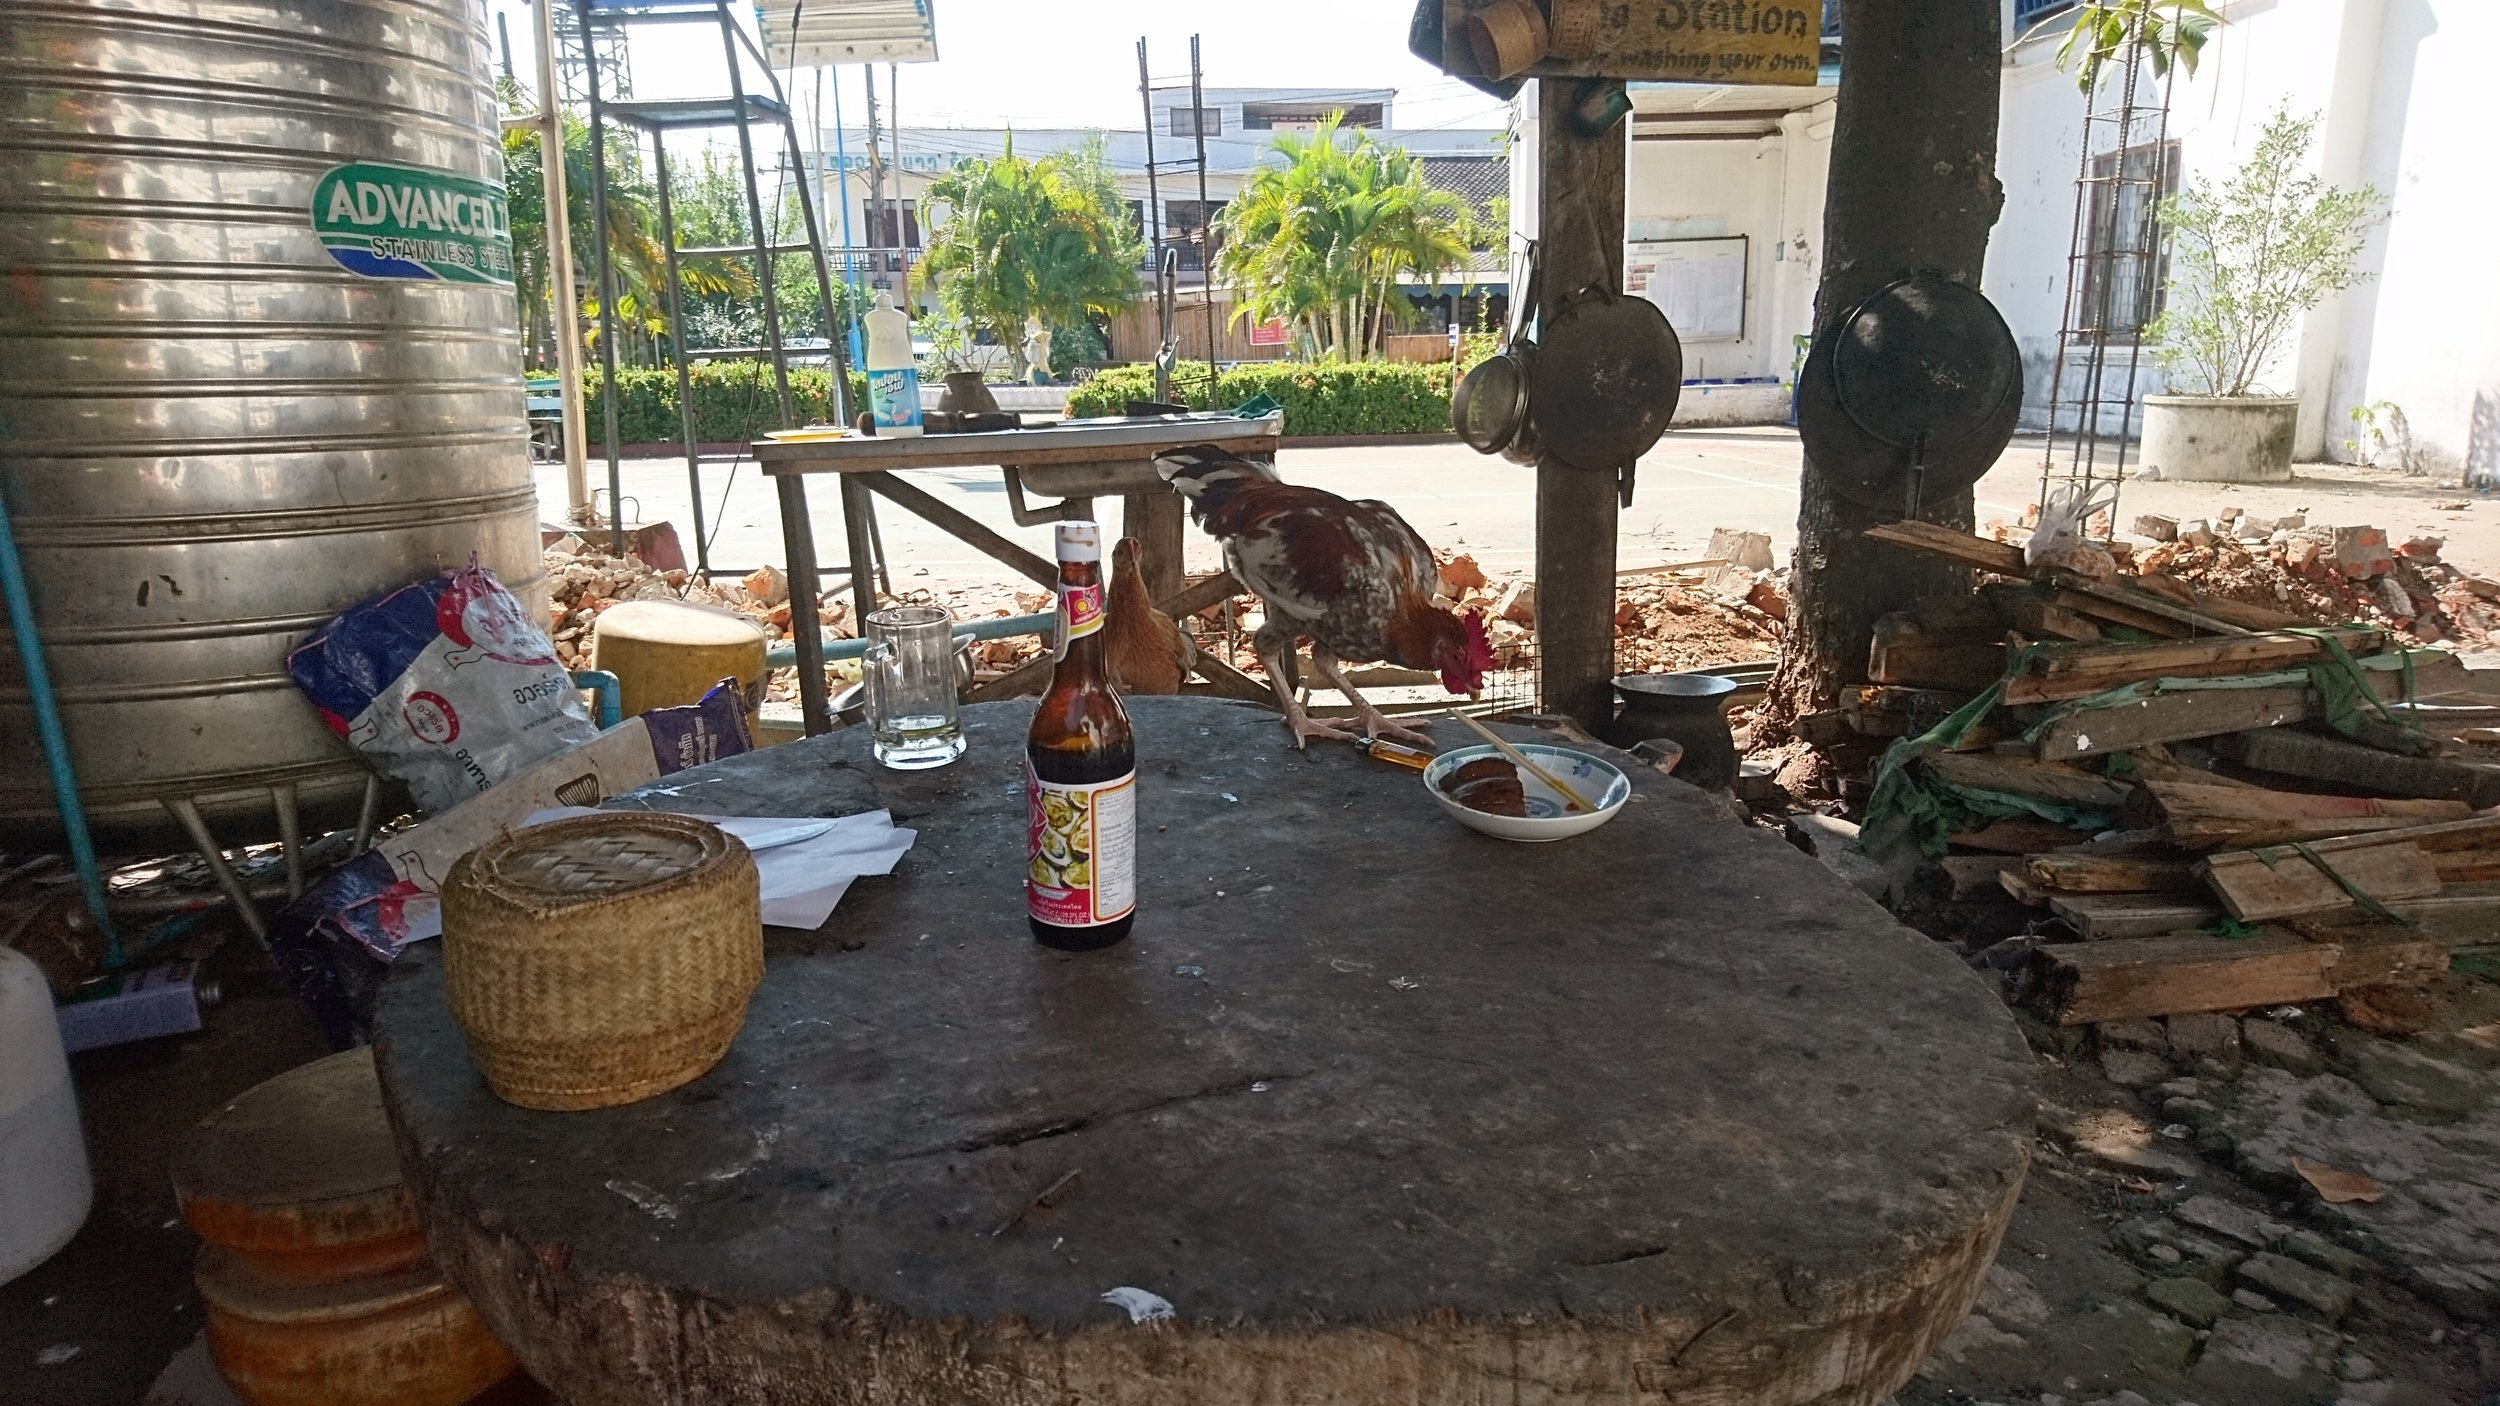 A new situation I encountered in Vang Vieng, Laos, - roosters in my dining area.